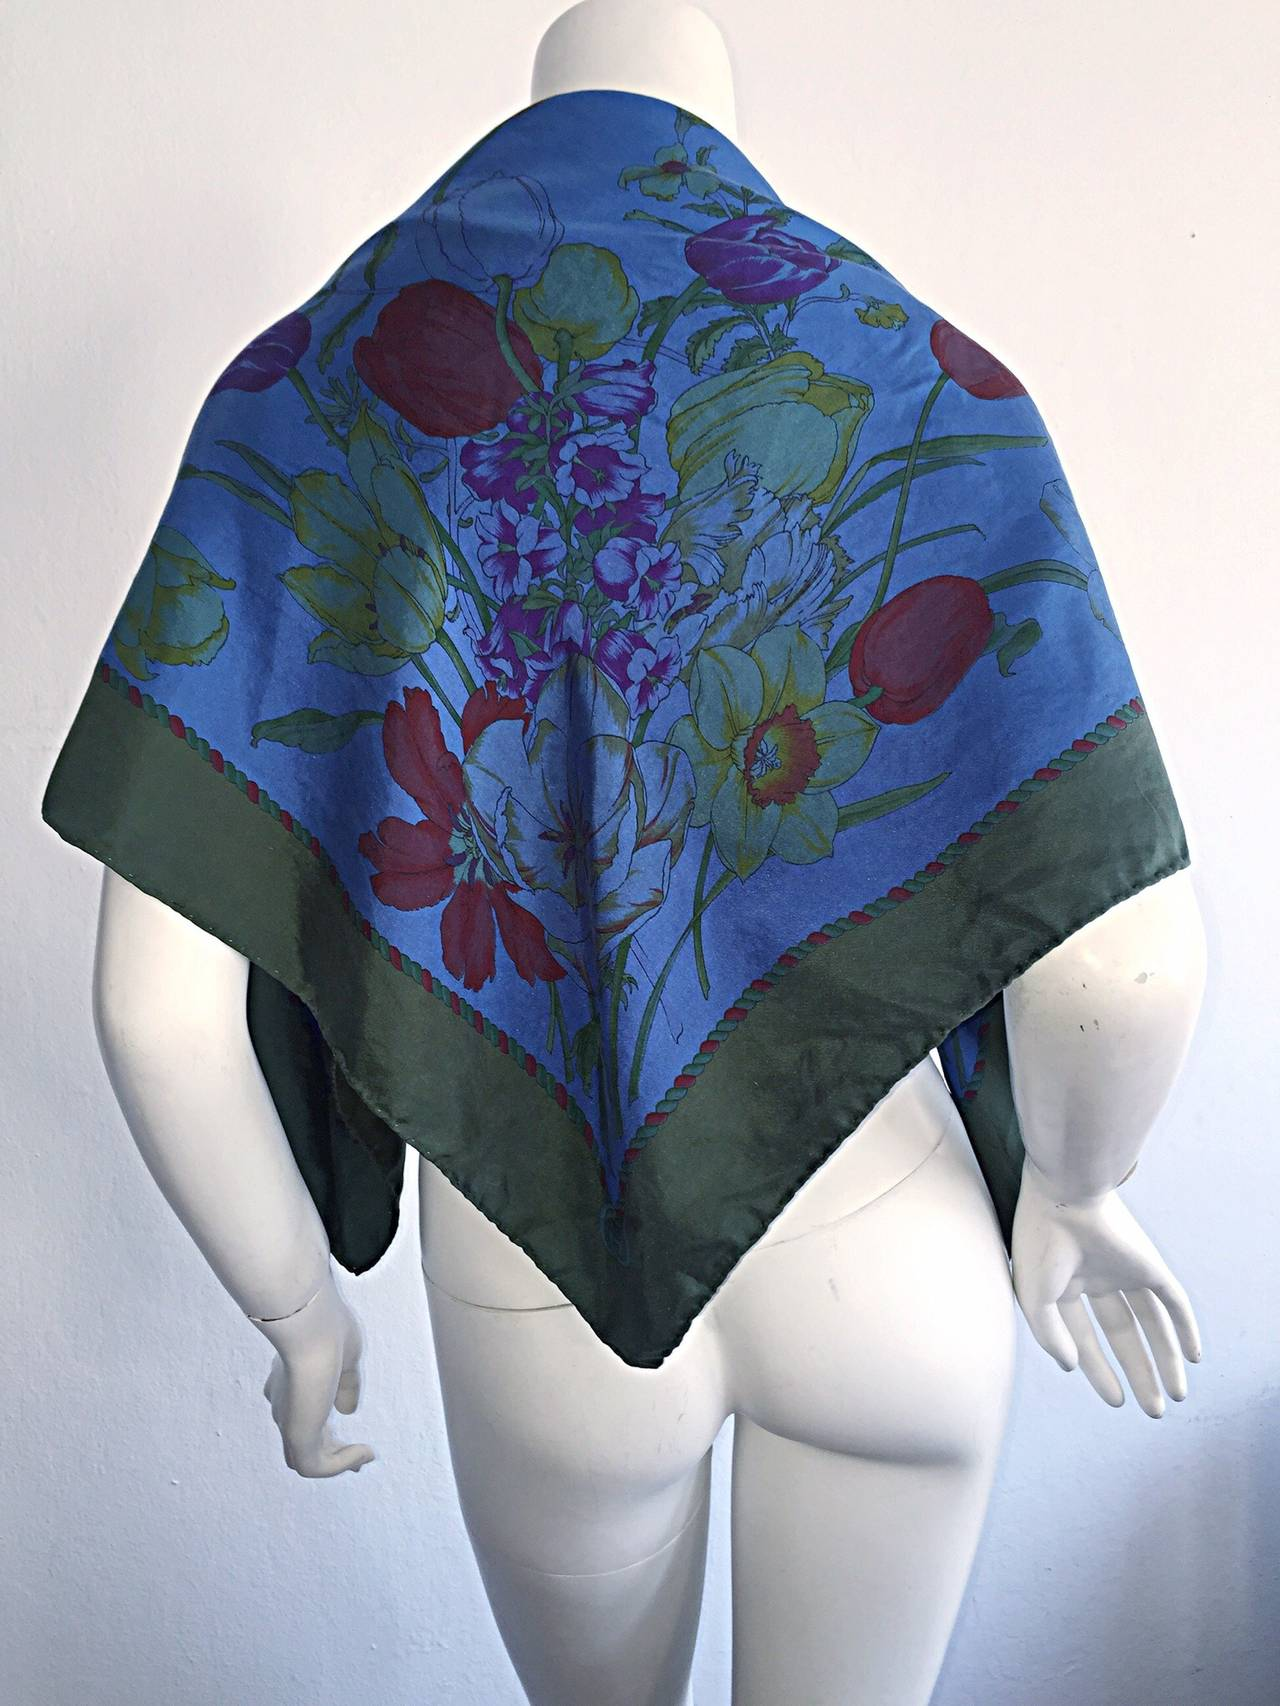 Gorgeous vintage late 70s Gucci scarf! From the 'Tulipano' collection, this beauty features a beautiful print of tulips, along with other flowers. Discreet GUcci 'GG' logo at one corner, with Gucci signature at opposite corner. Can be worn a number